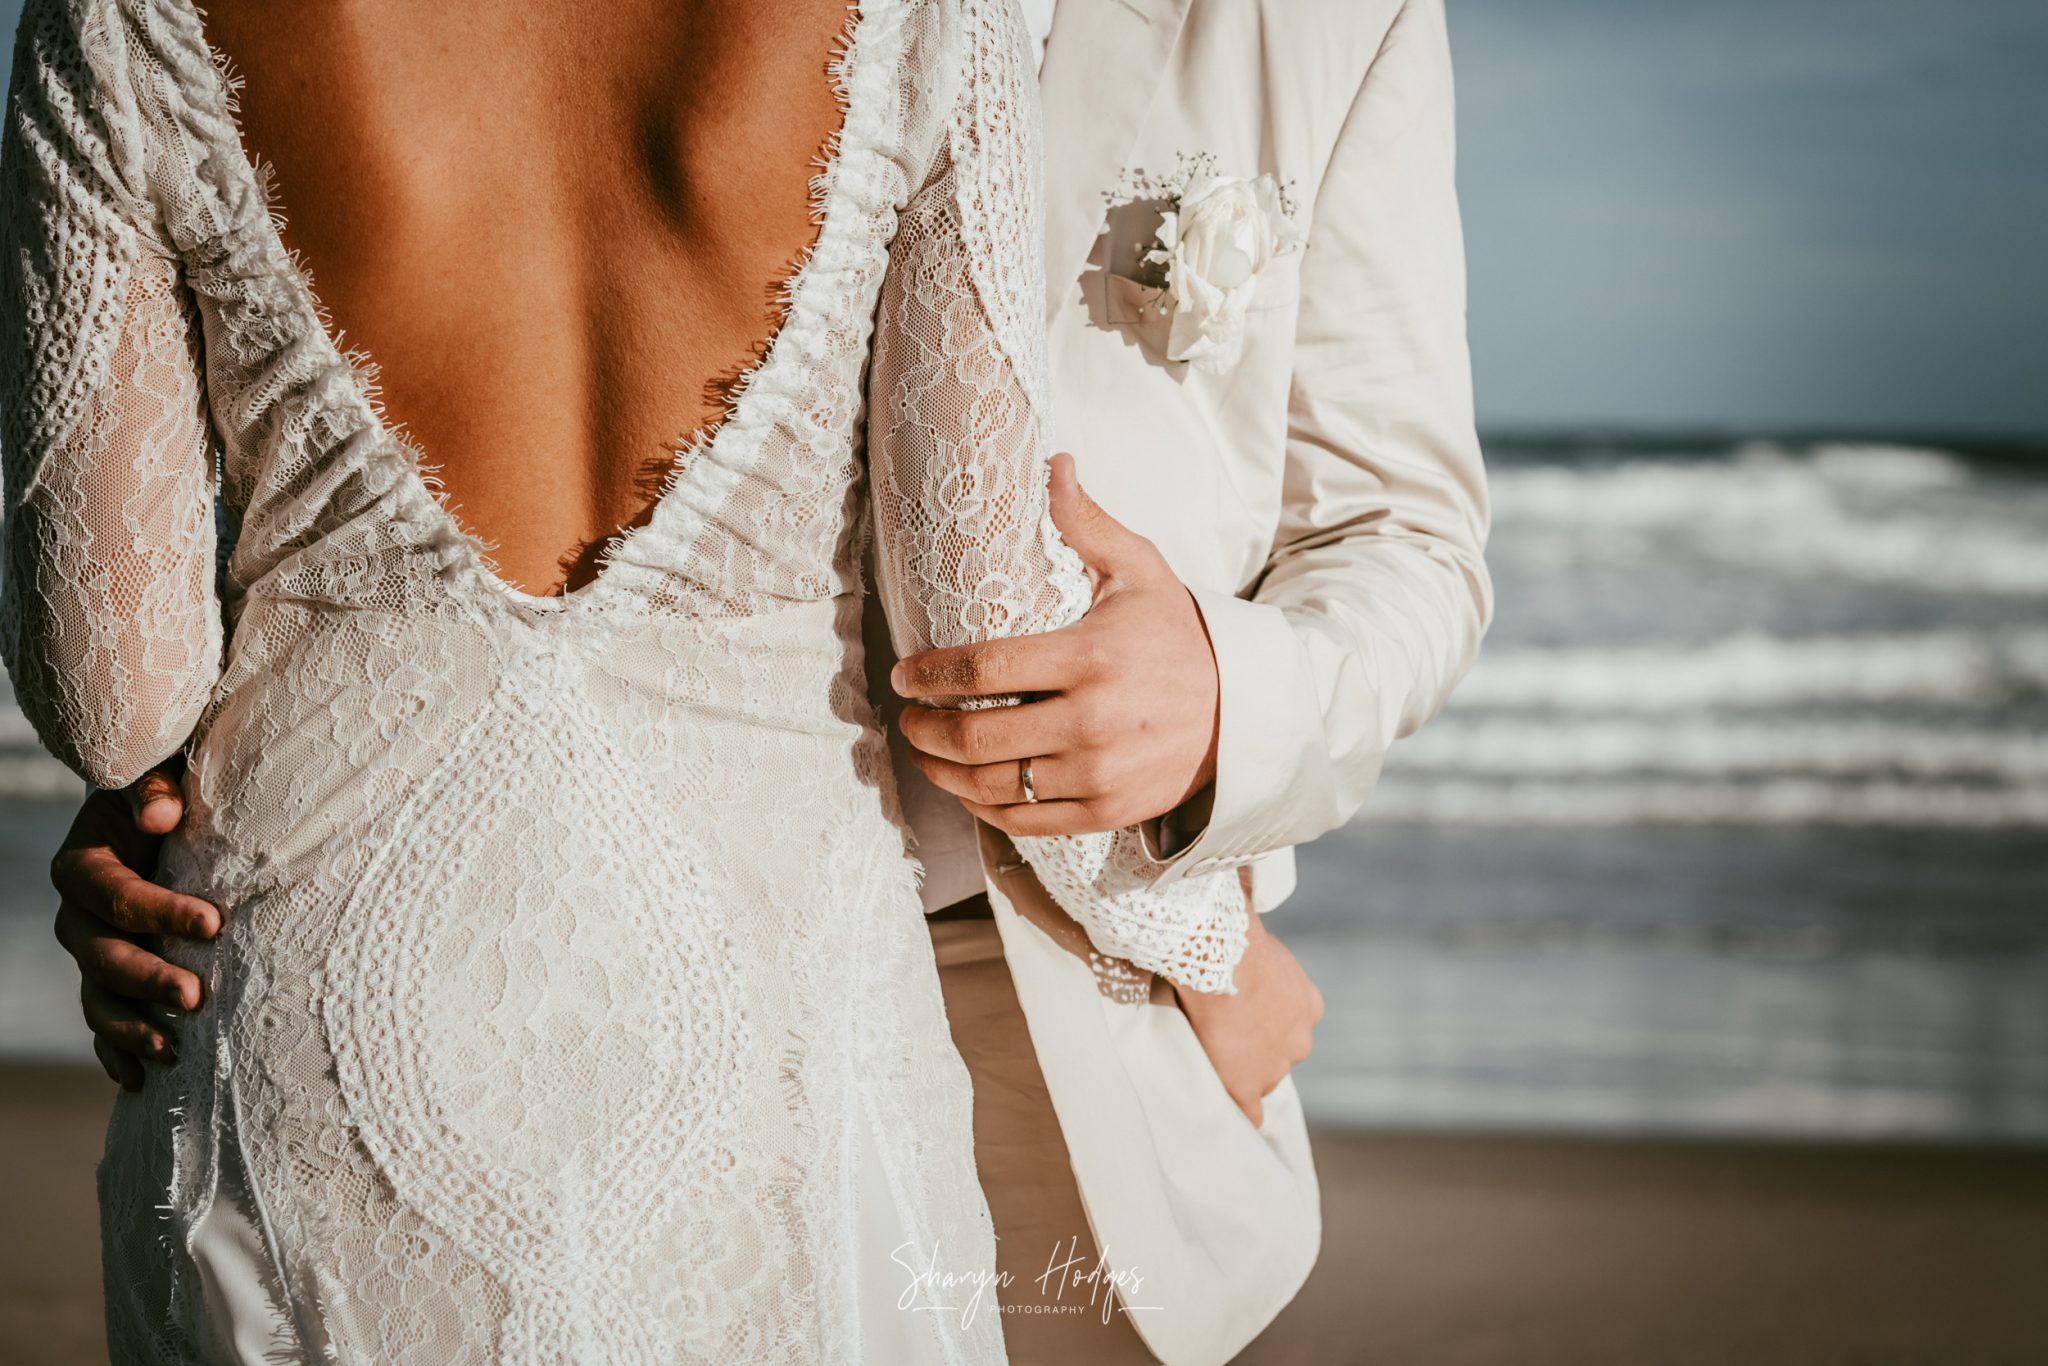 "Milano & Christopher said their ""I Do's"" during an intimate beach wedding at the De Vette Mossel in Groot Brak - Sharyn Hodges"